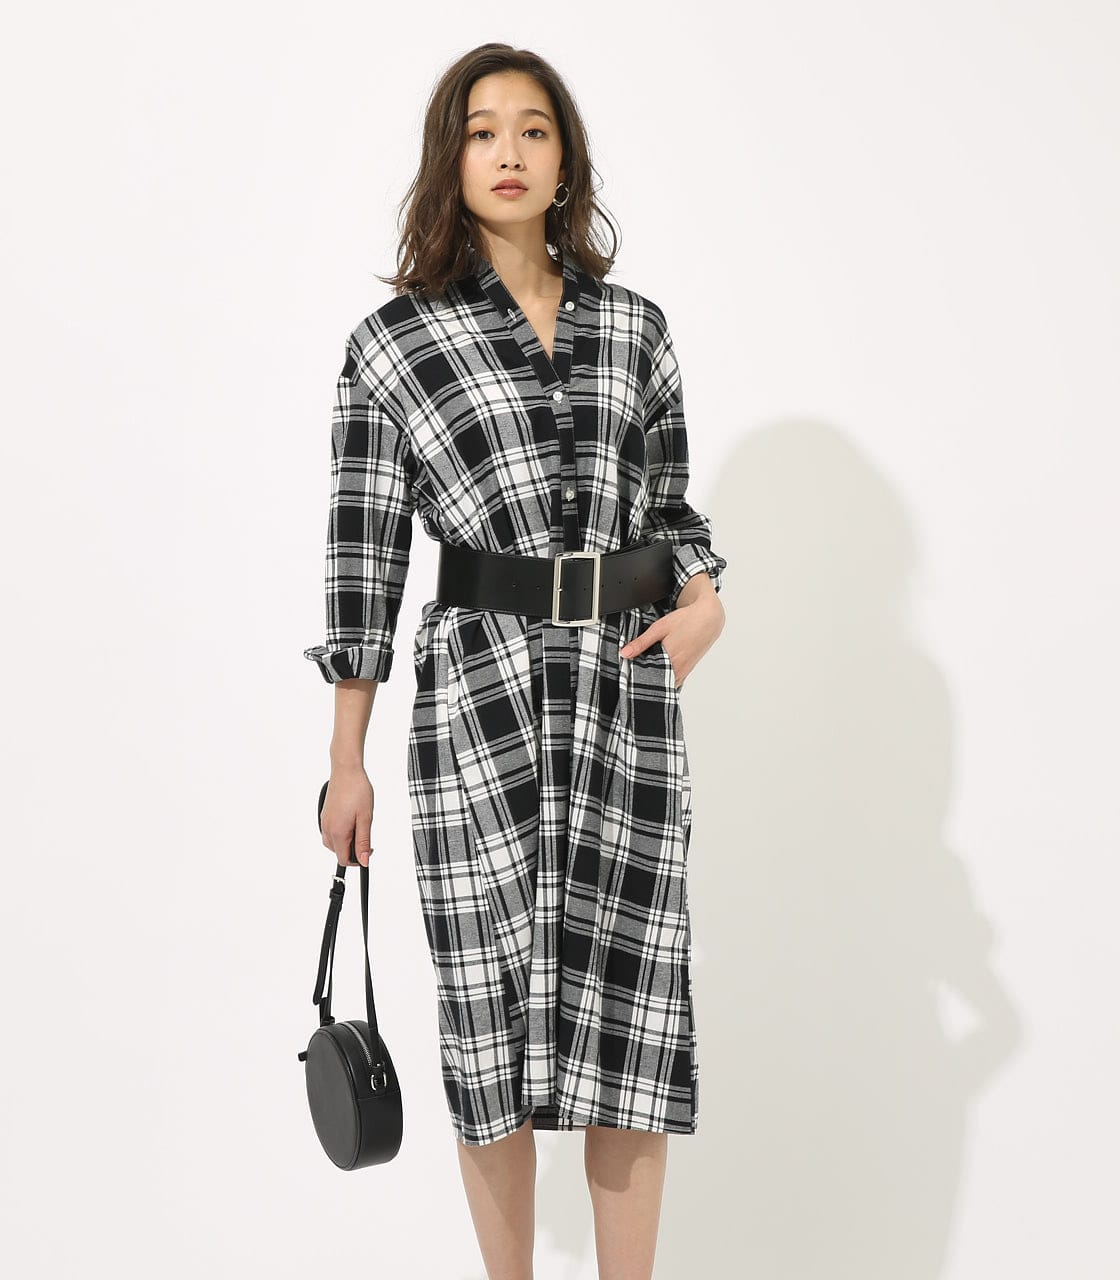 【AZUL BY MOUSSY】CHECK ONEPIECE 詳細画像 柄BLK 2